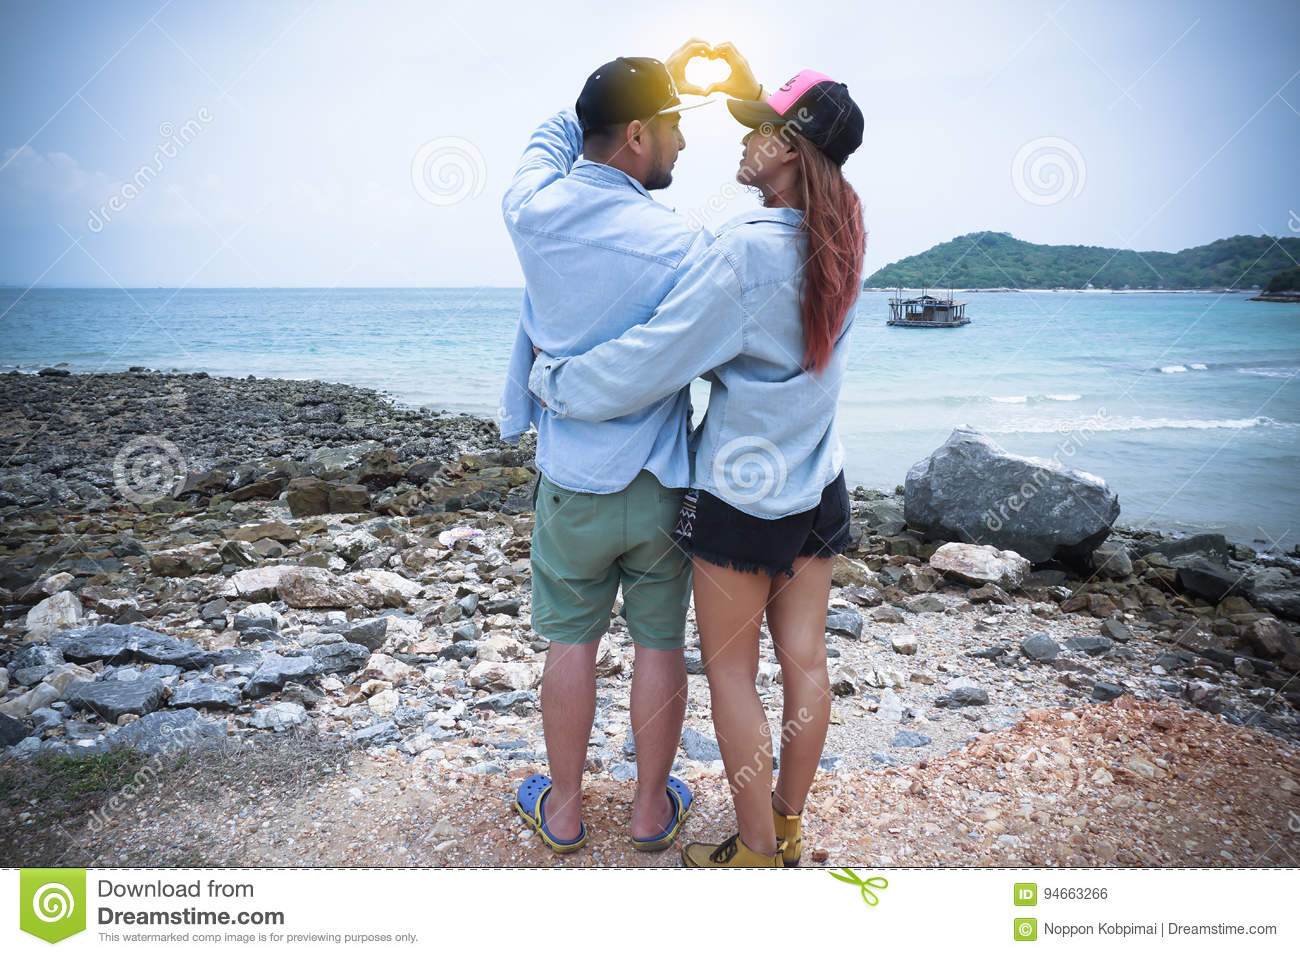 A couple standing hugging and look into each other eyes.